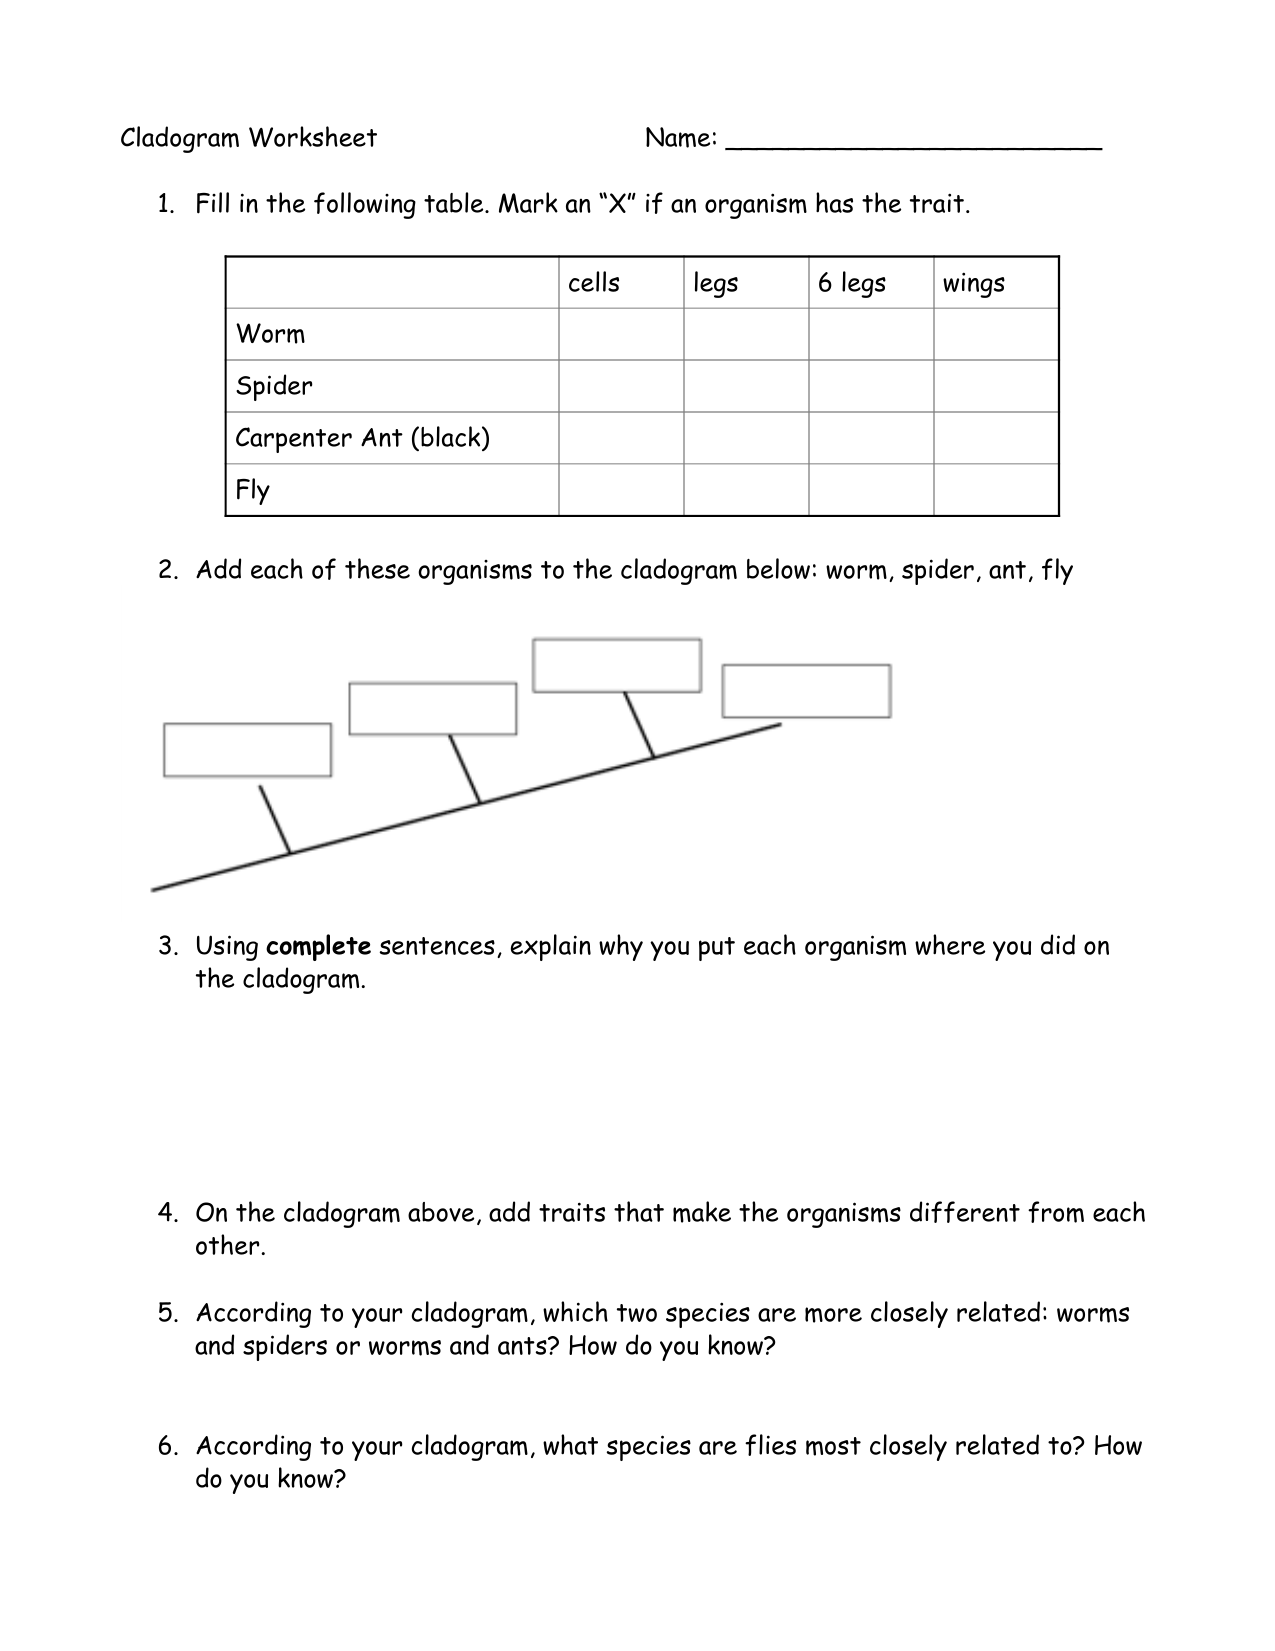 Worksheets Cladogram Worksheet cladogram worksheet name 1 fill in the following table mark an